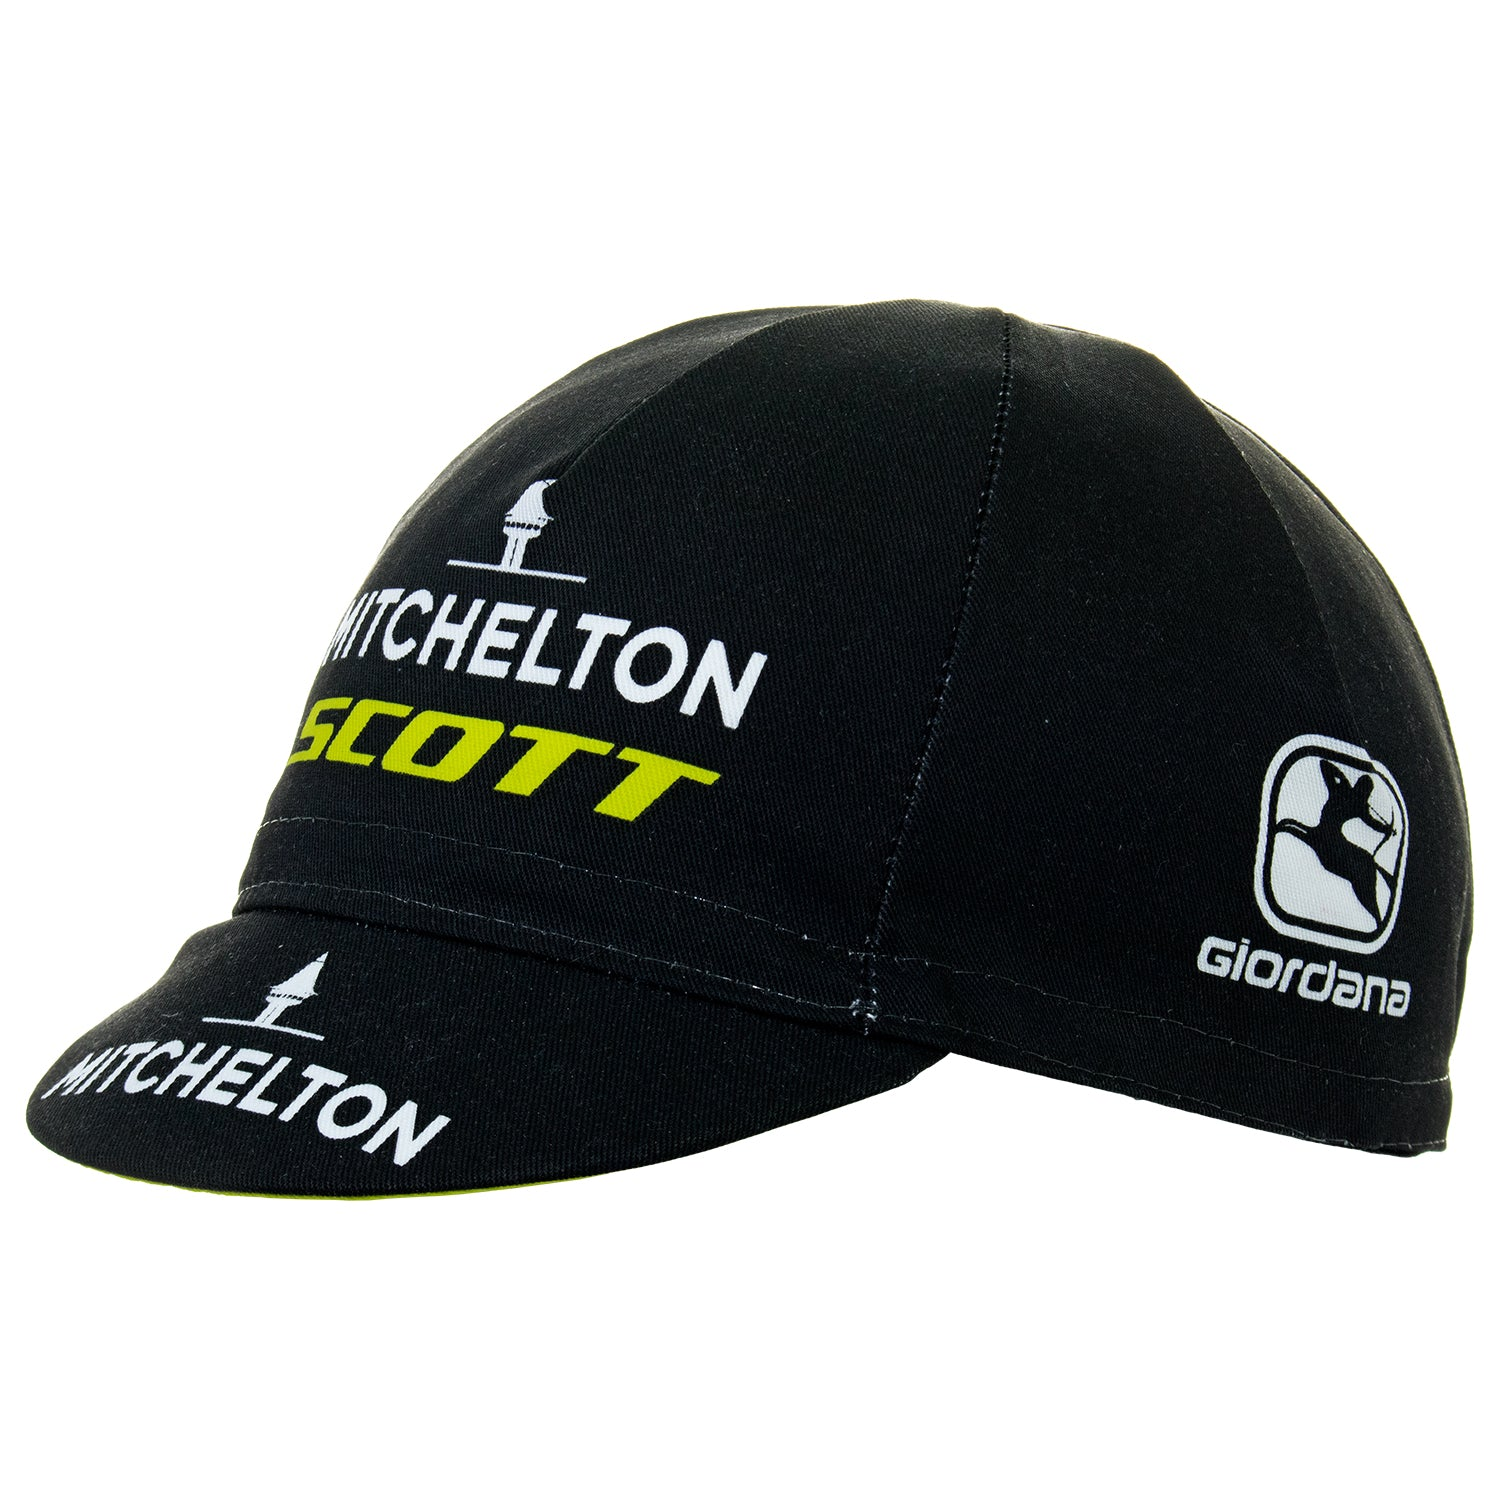 Mitchelton Scott 2019 Team Cotton Cycling Cap